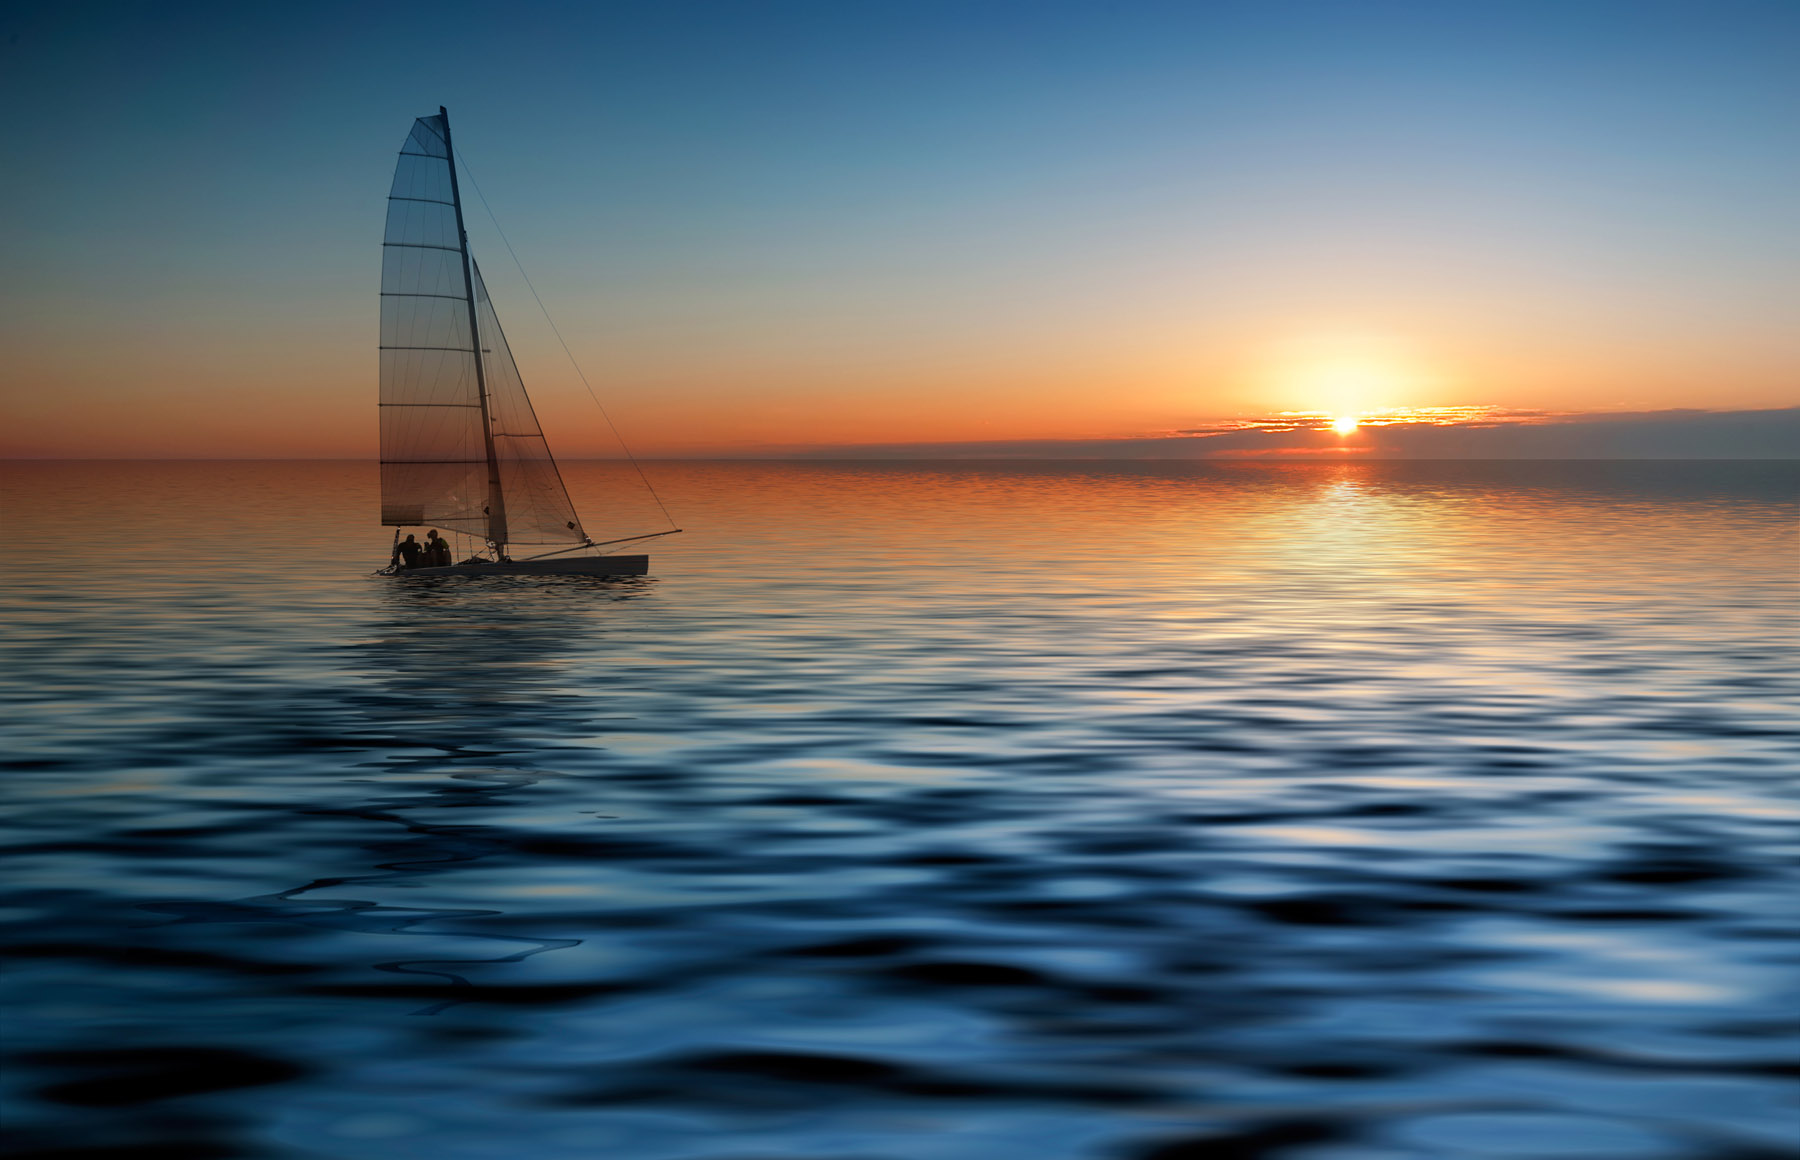 Sailing high definition material 1203